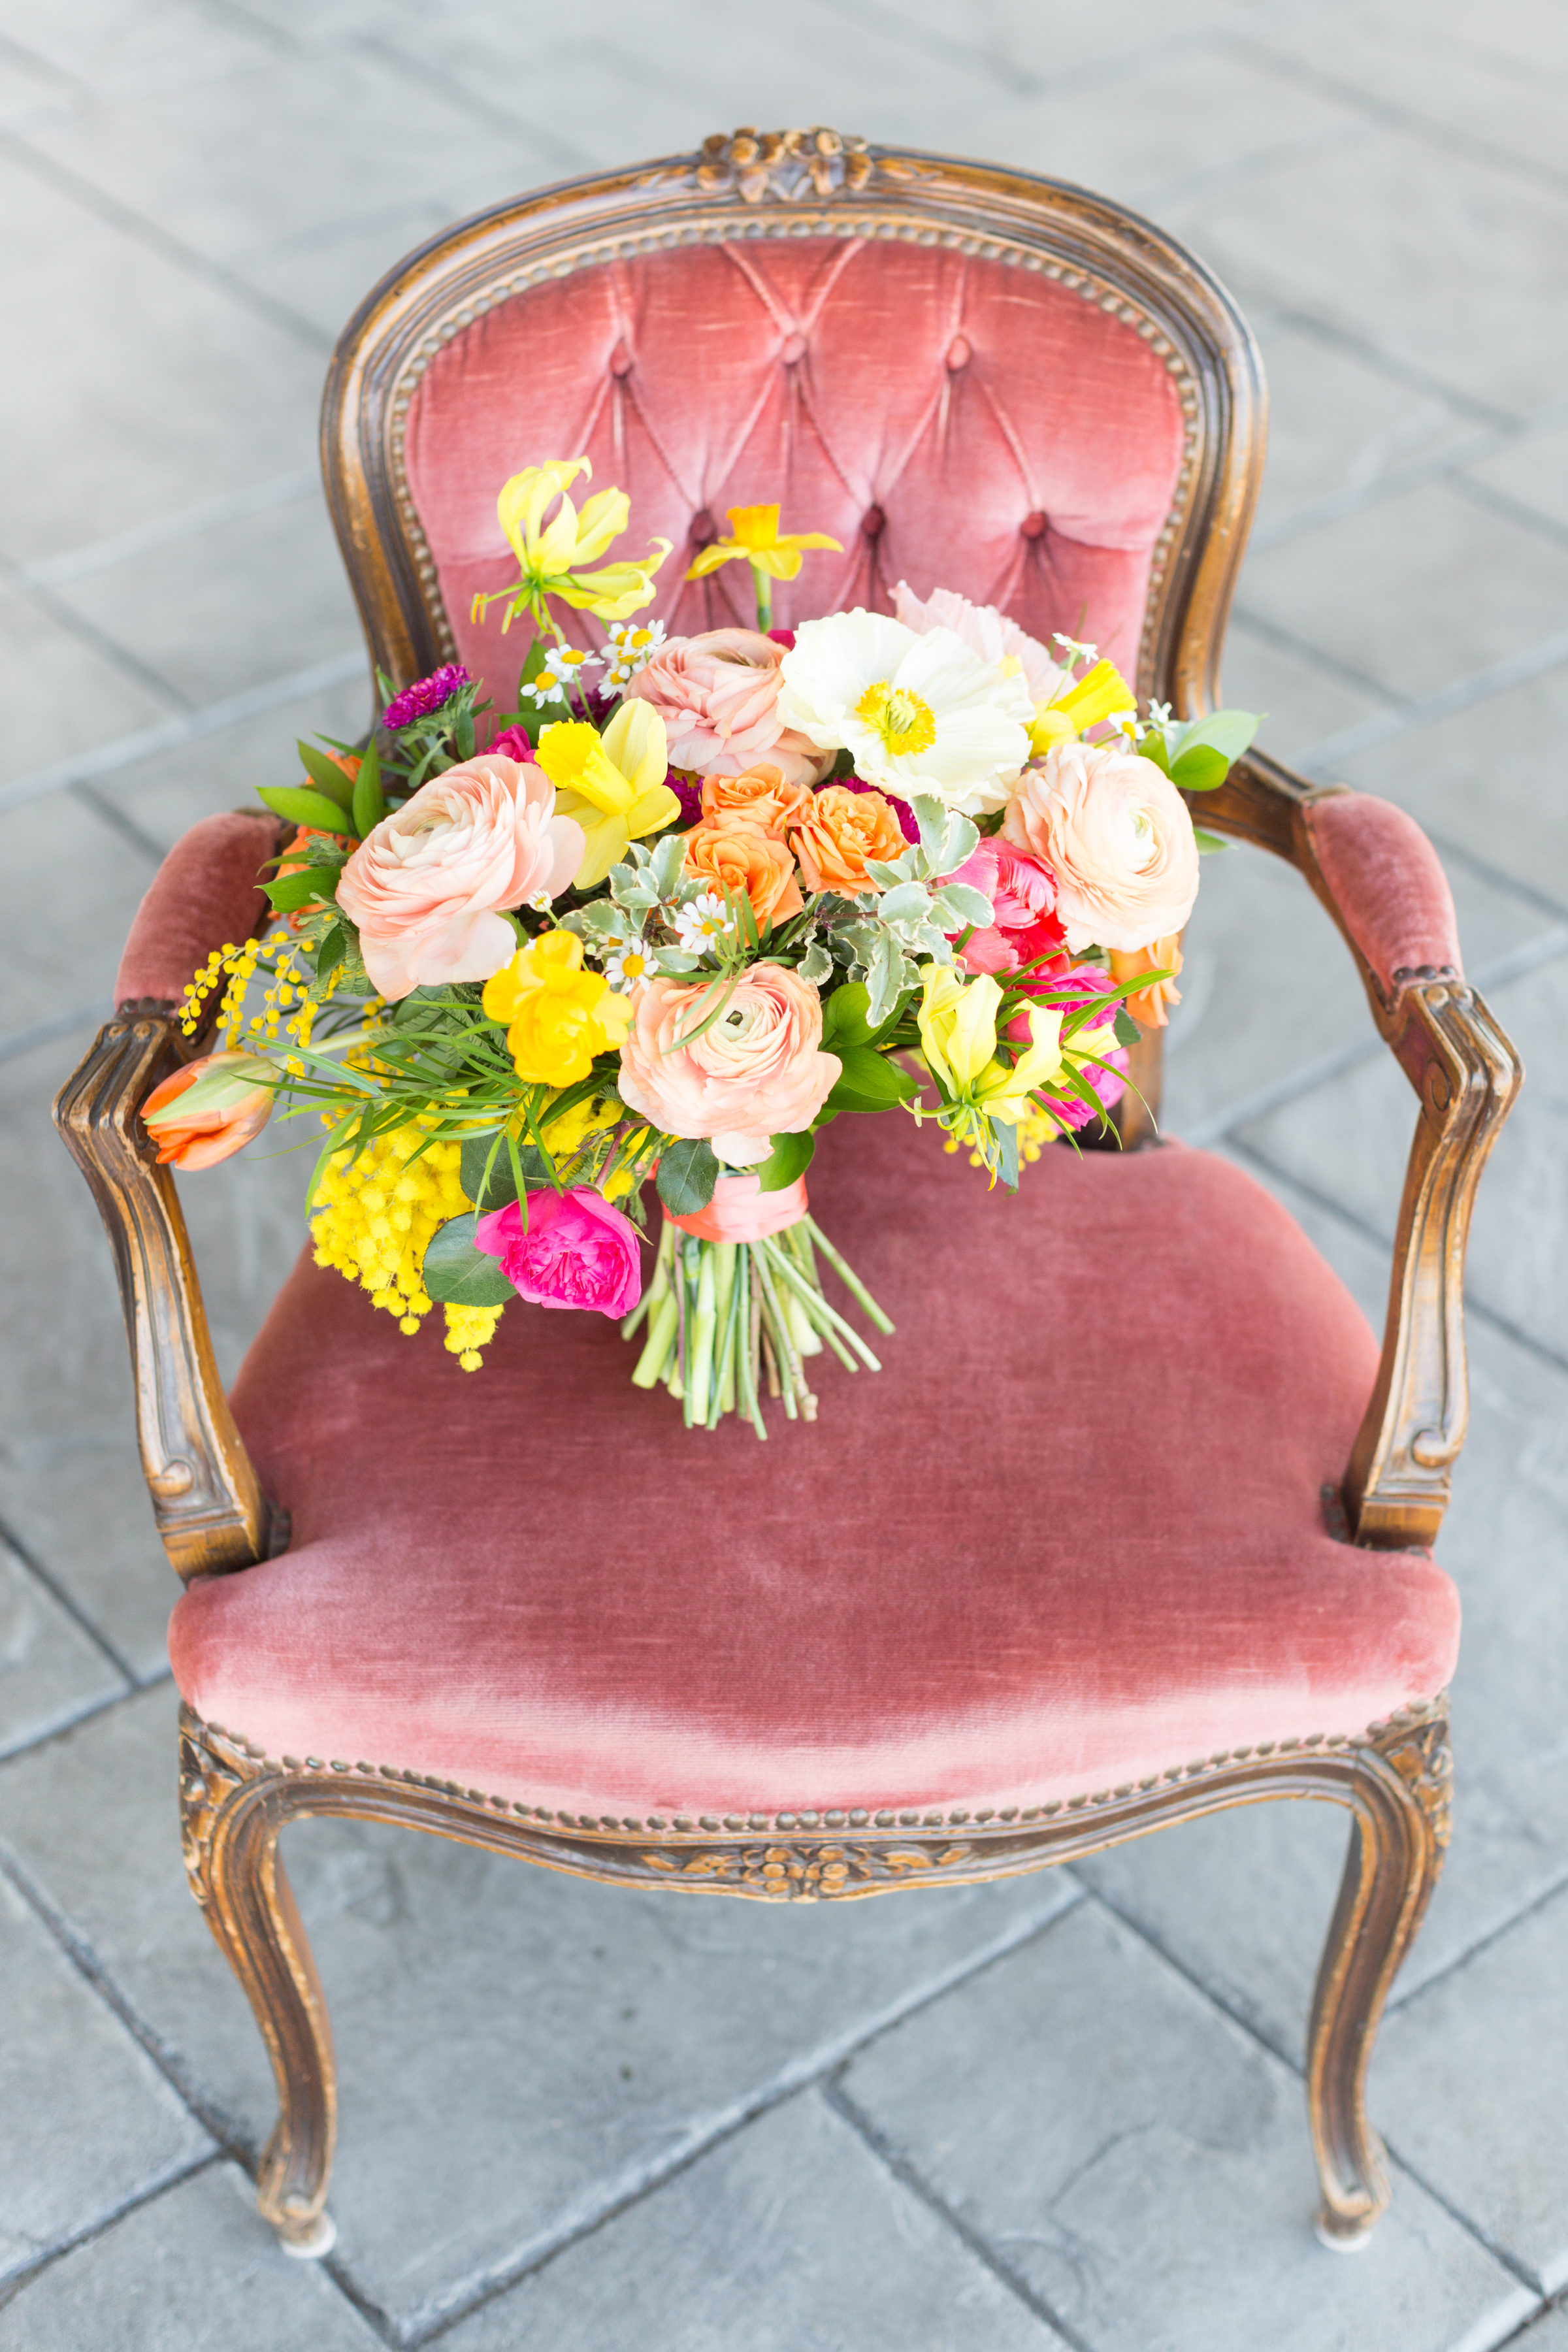 Bouquet on vintage chair